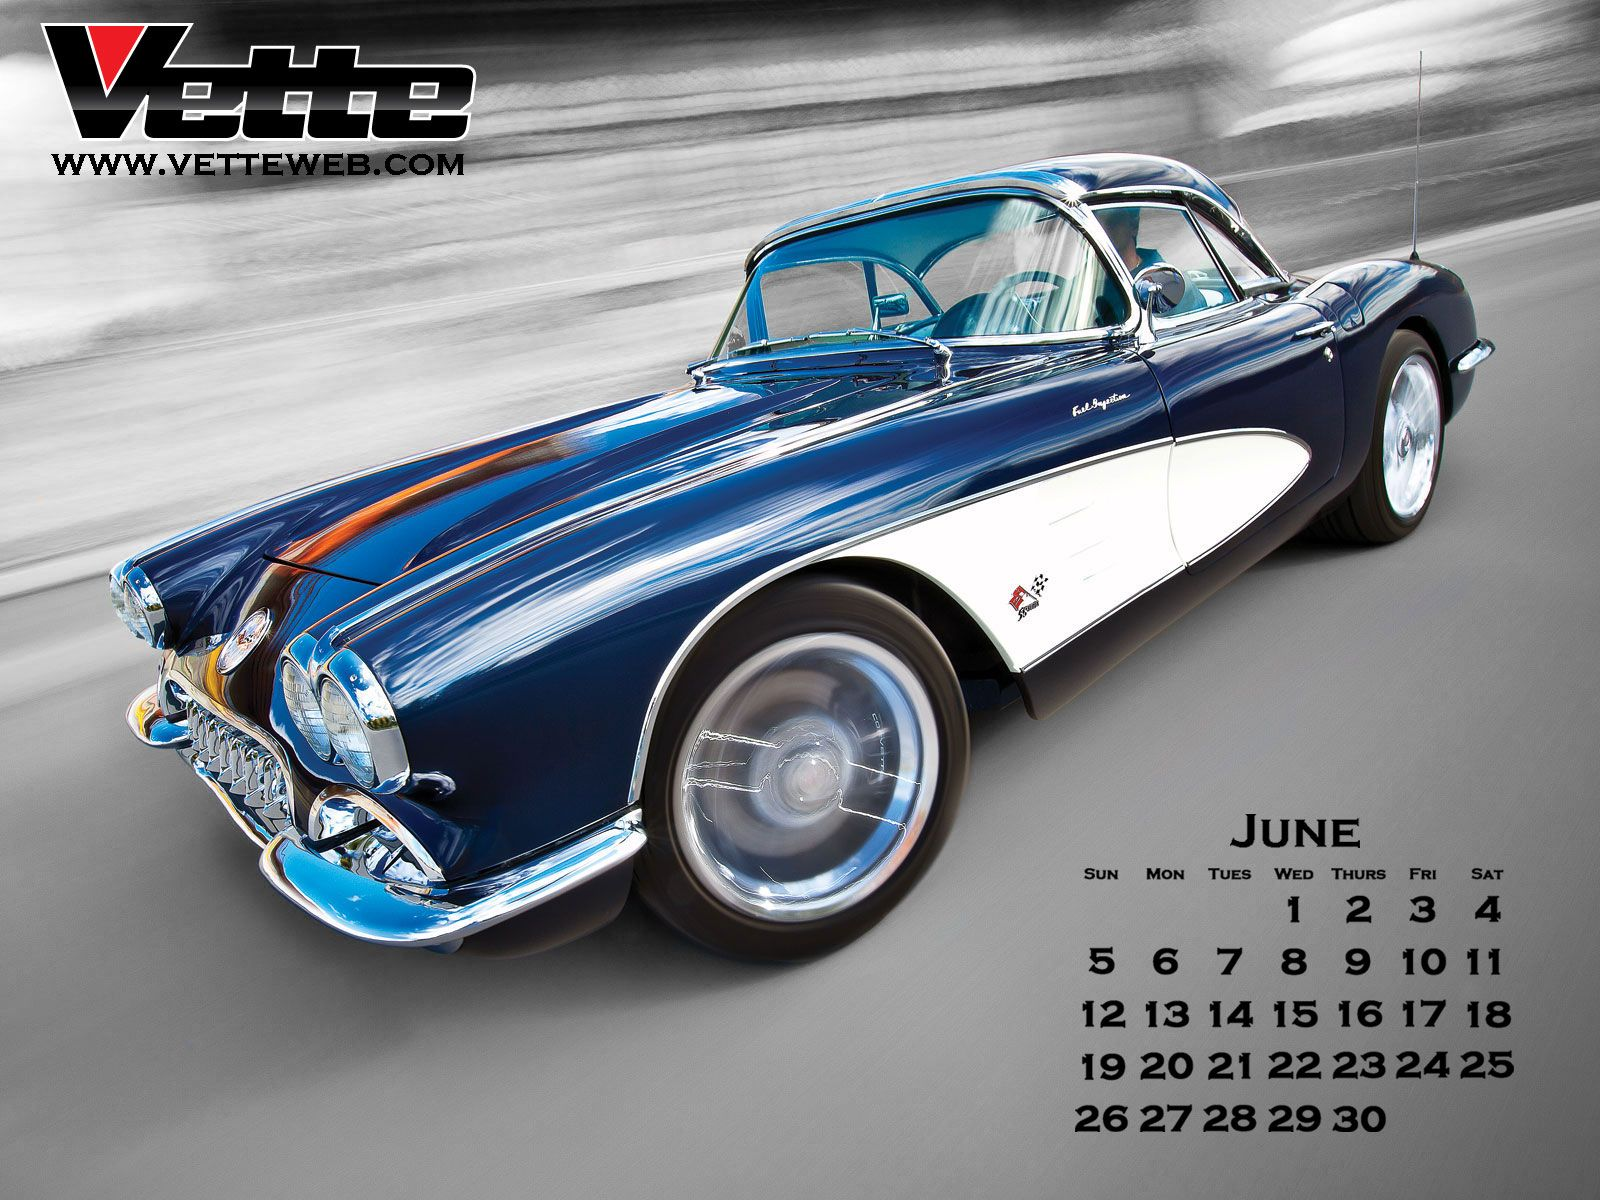 Thread Vette Magazines June Monthly Calender 1600x1200